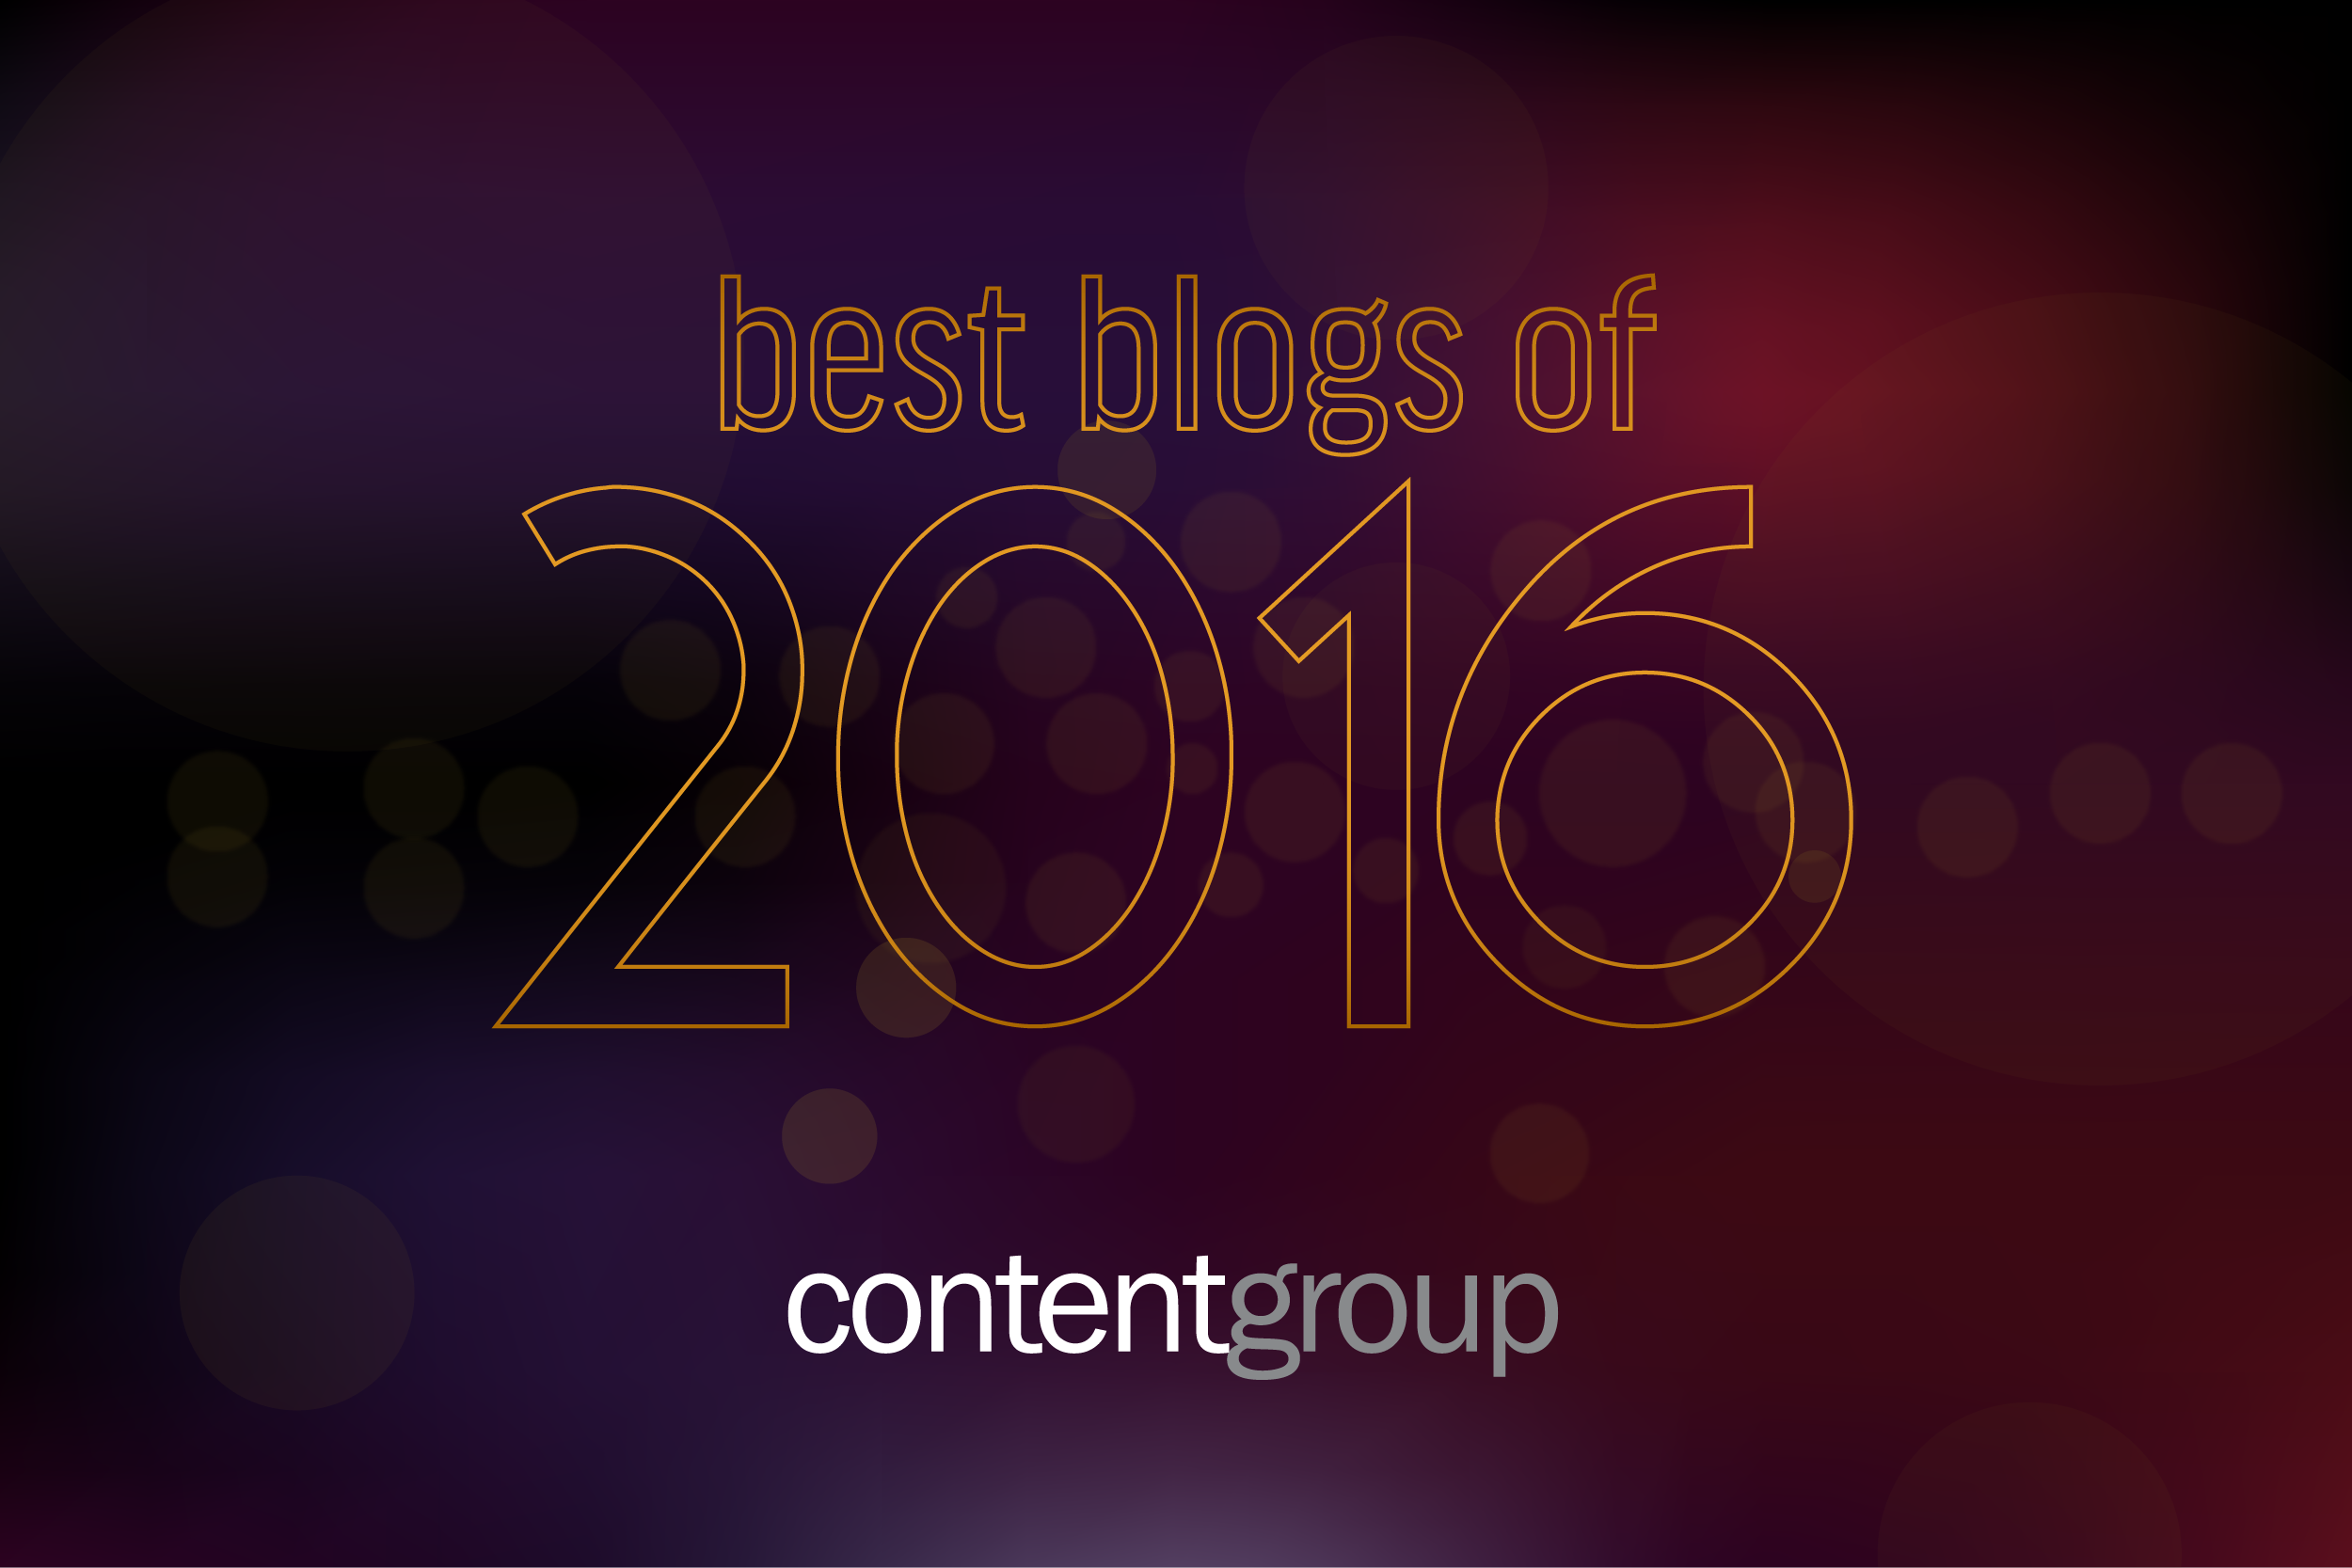 The most popular blogs of 2016